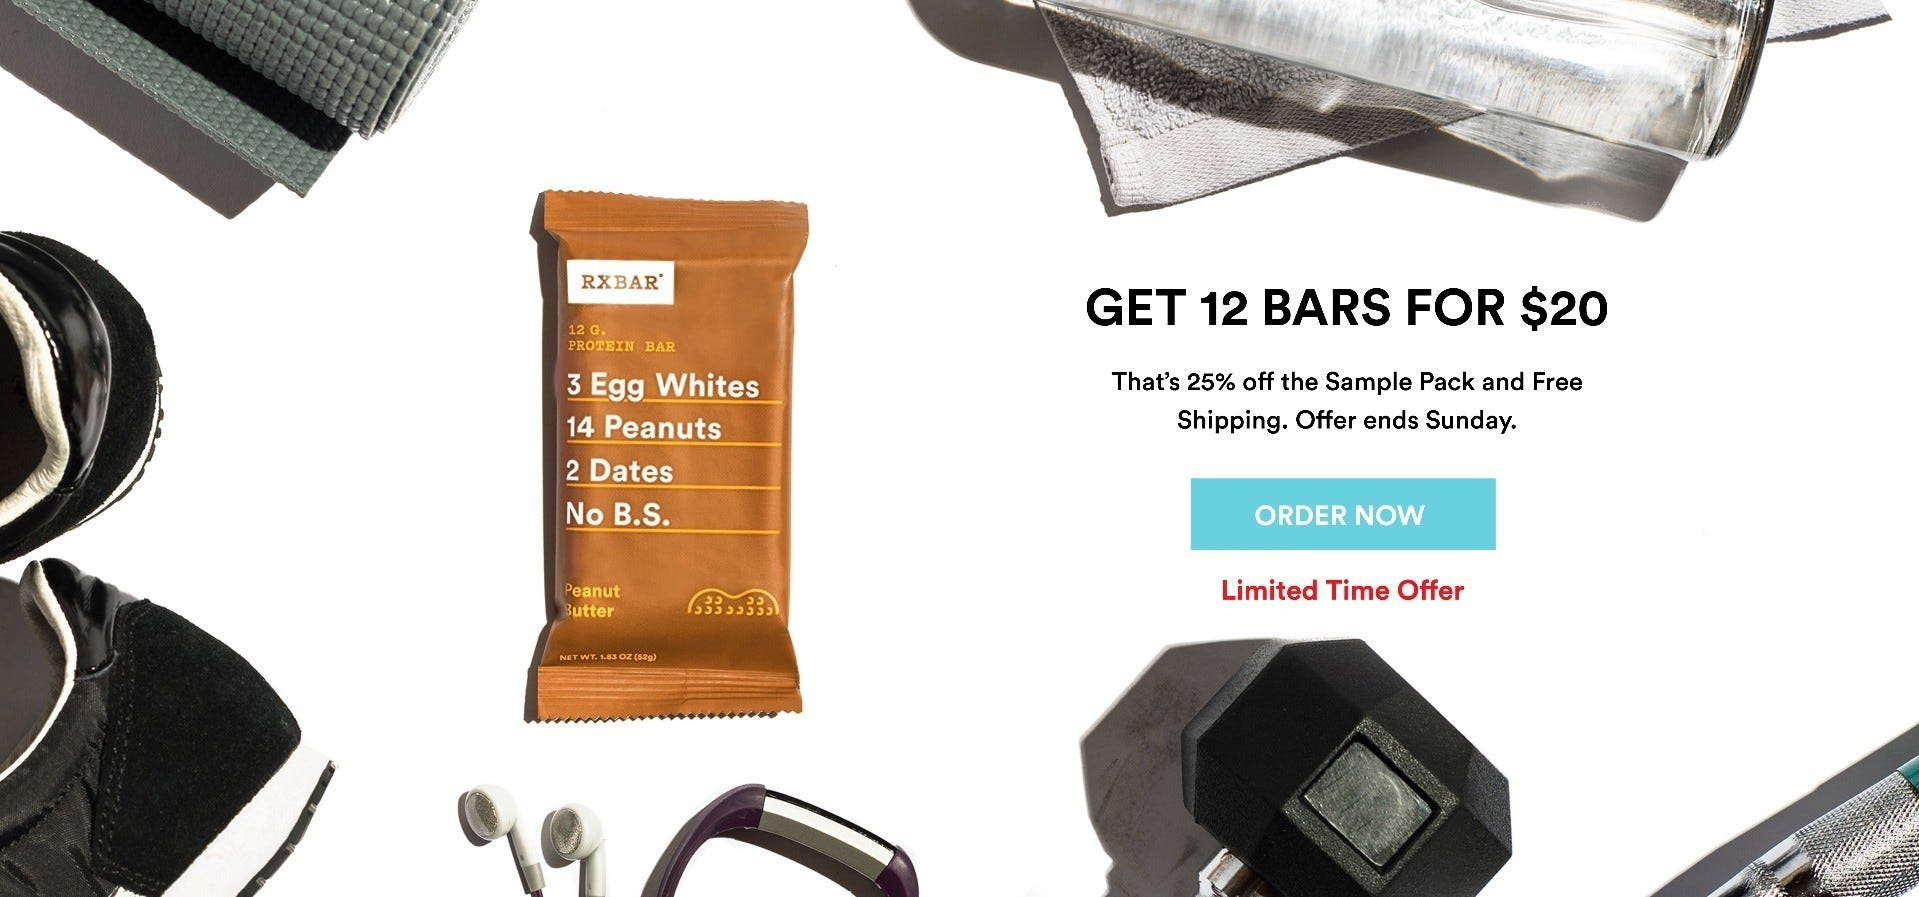 Get 12 Bars for $20